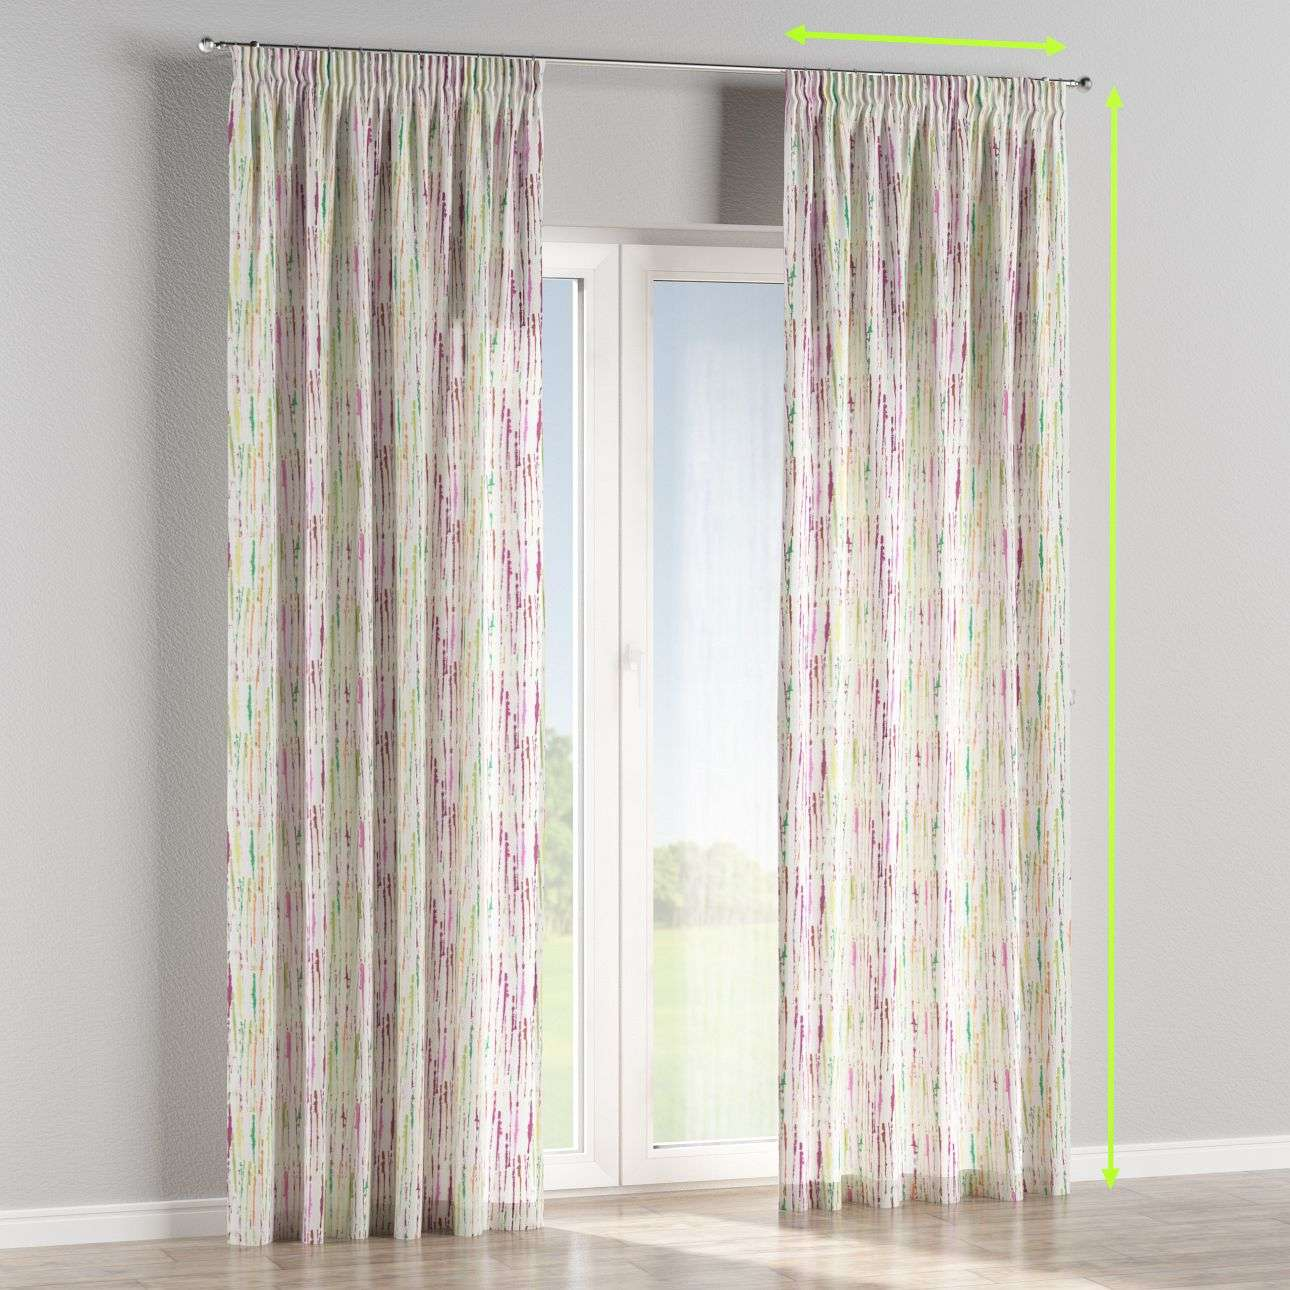 Pencil pleat lined curtains in collection Aquarelle, fabric: 140-72